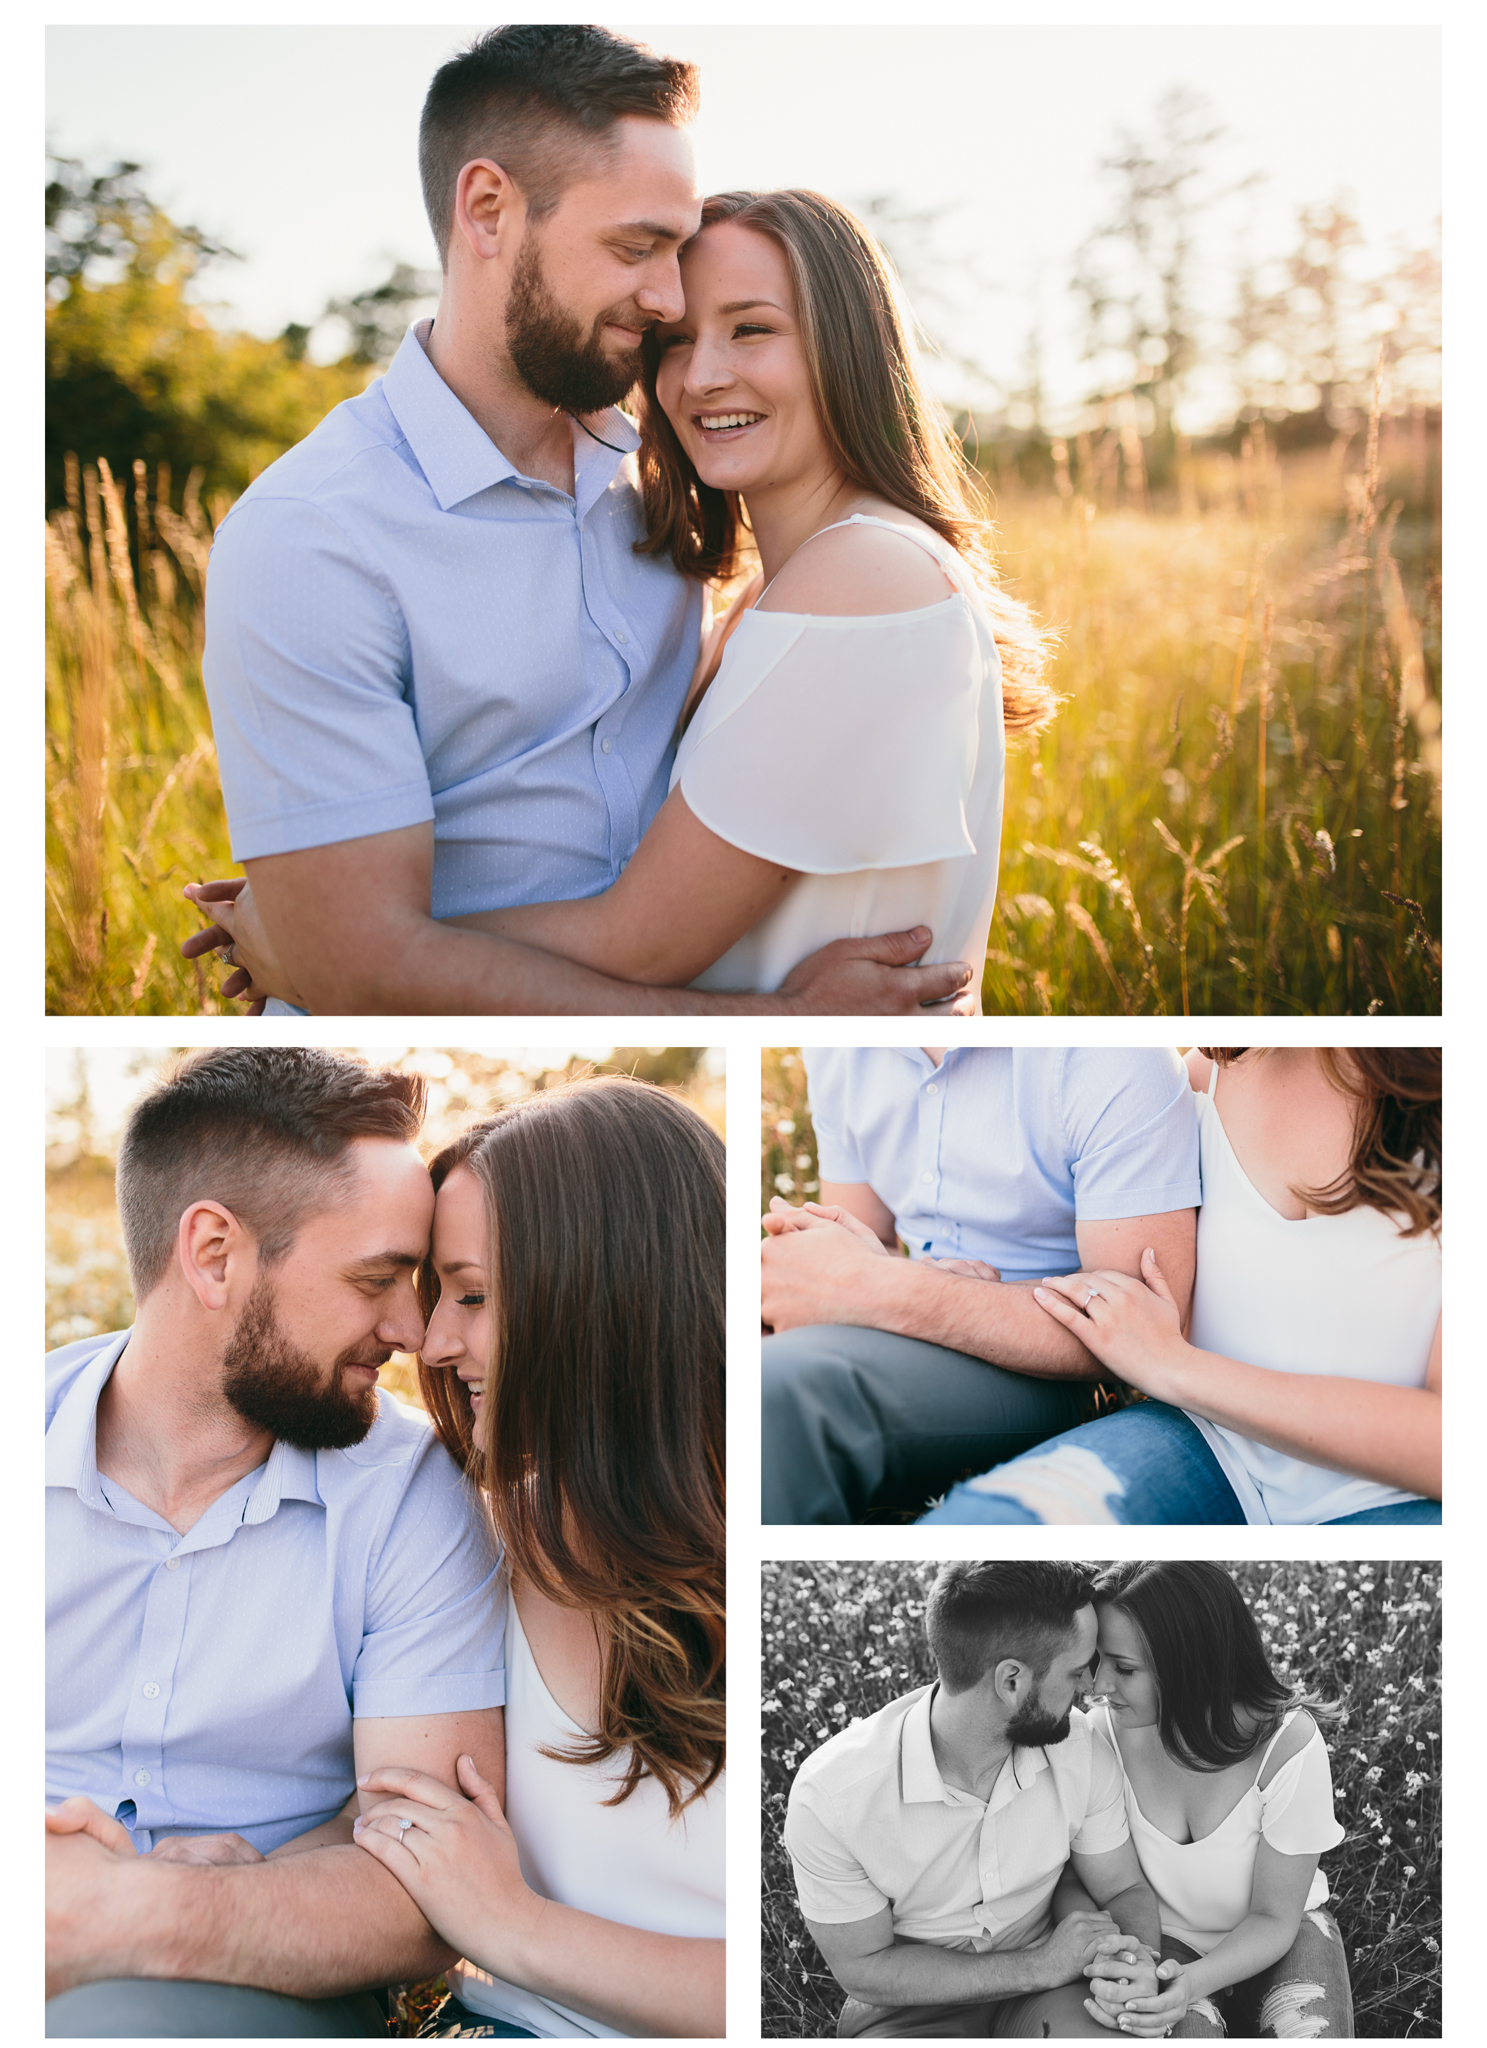 claire-eric-engagement-1.jpg